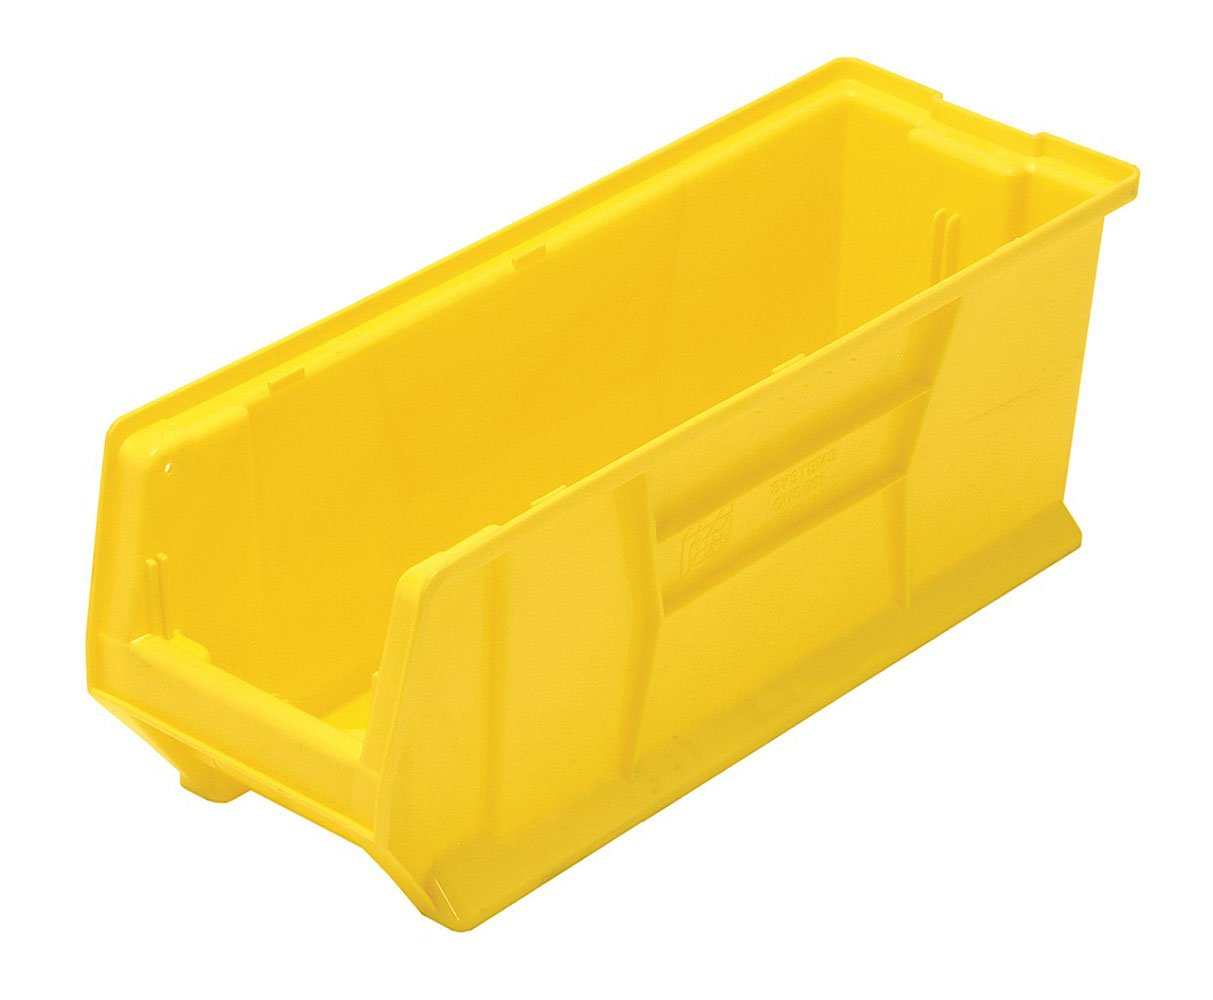 Quantum QUS951 Plastic Storage Stacking Hulk Container, 24-Inch by 8-Inch by 9-Inch, Yellow, Case of 6 by Quantum Storage Systems B002E8J8RM